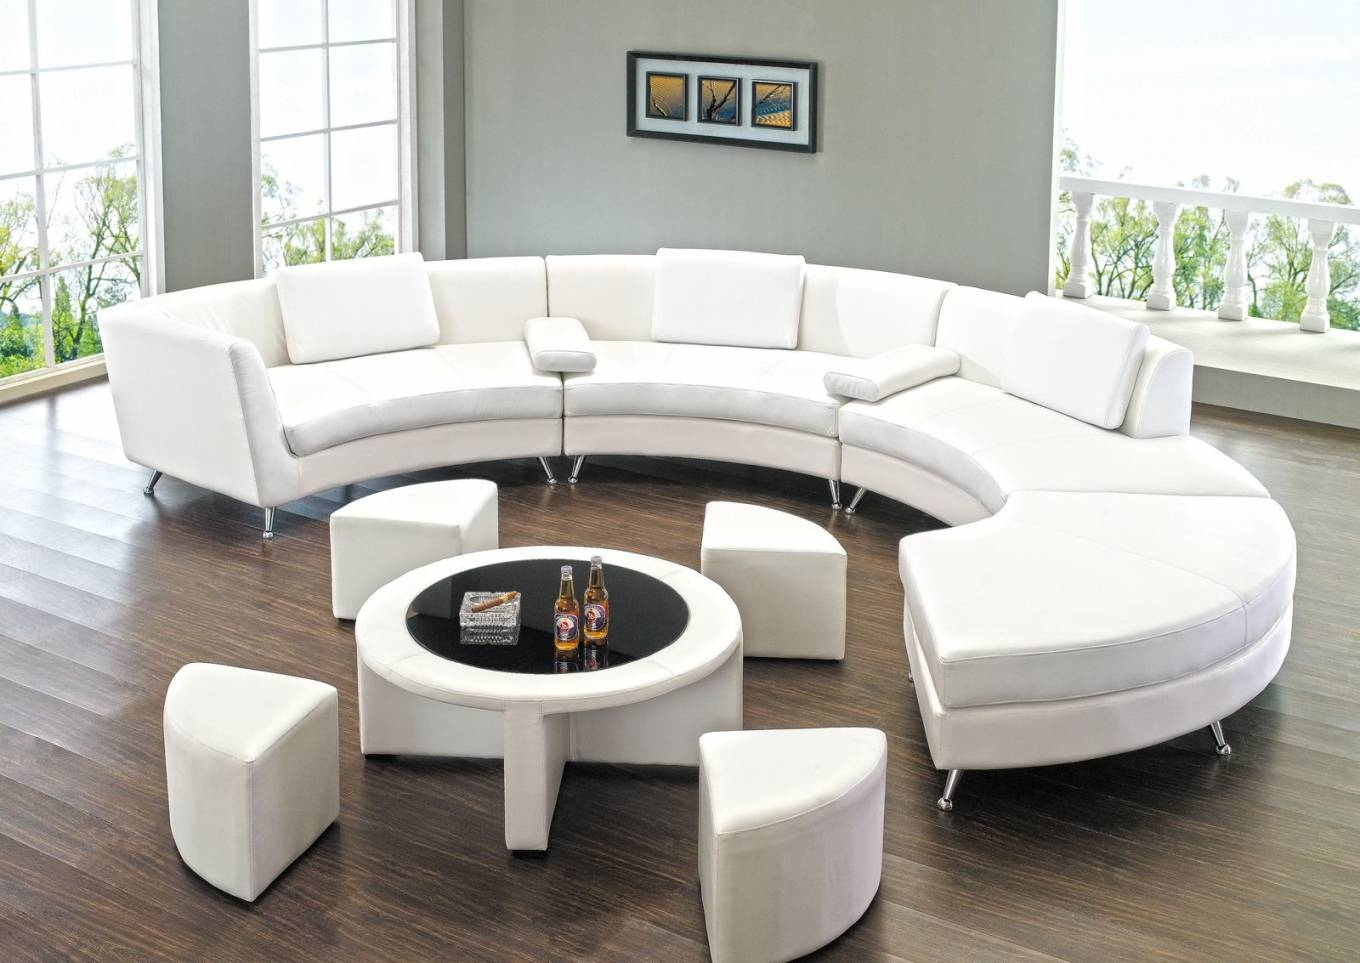 Round Sectional Sofa Bed with Round Sectional Sofa Bed (Image 20 of 25)